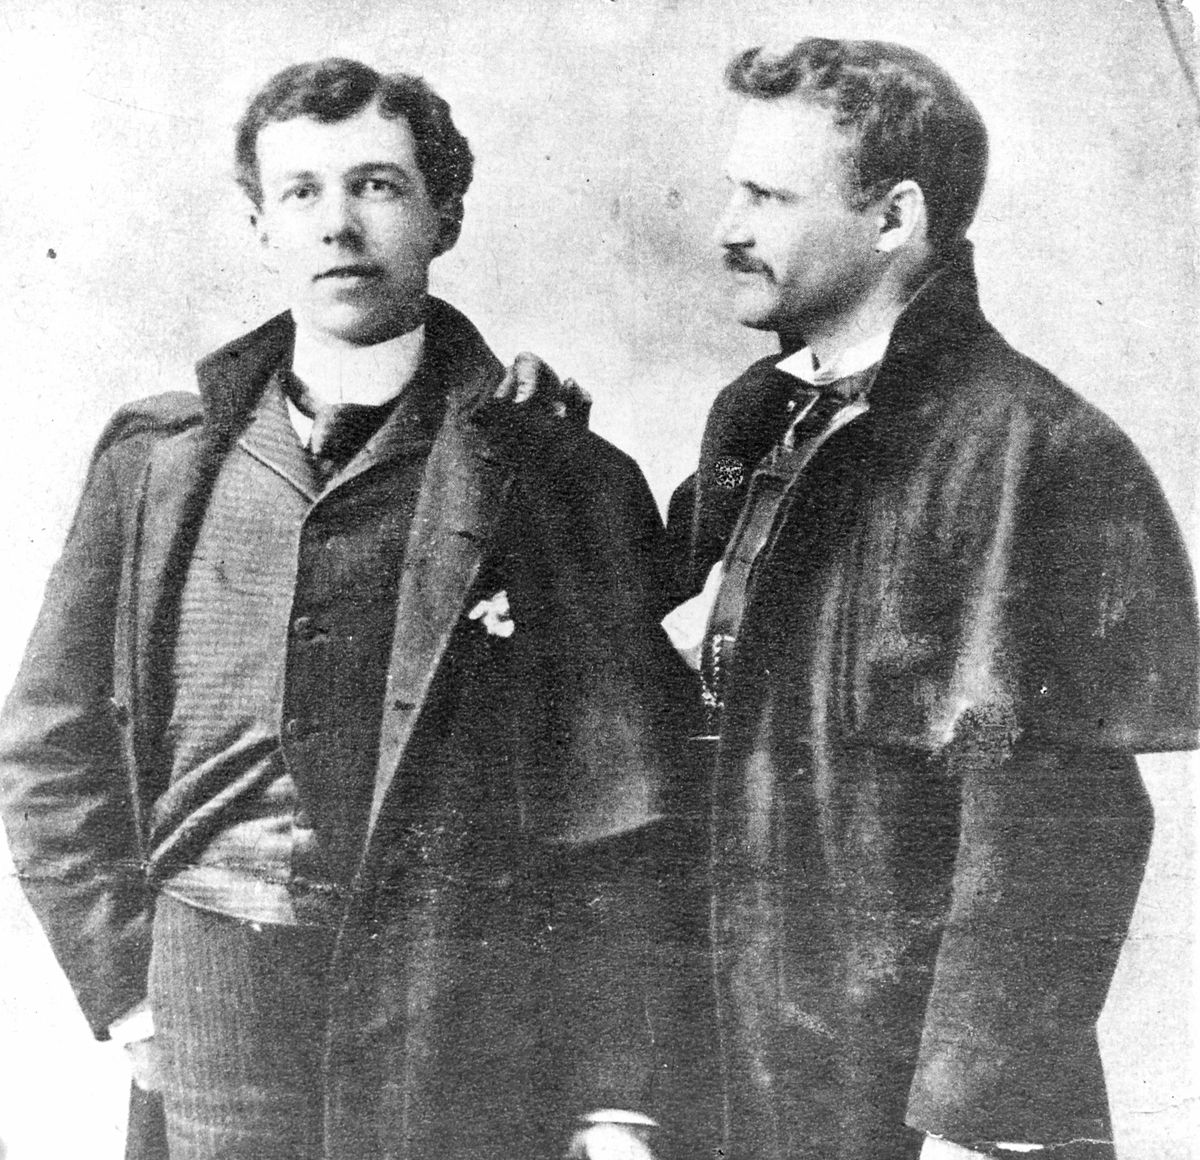 Two late-19th century architects in Chicago pose for a portrait.